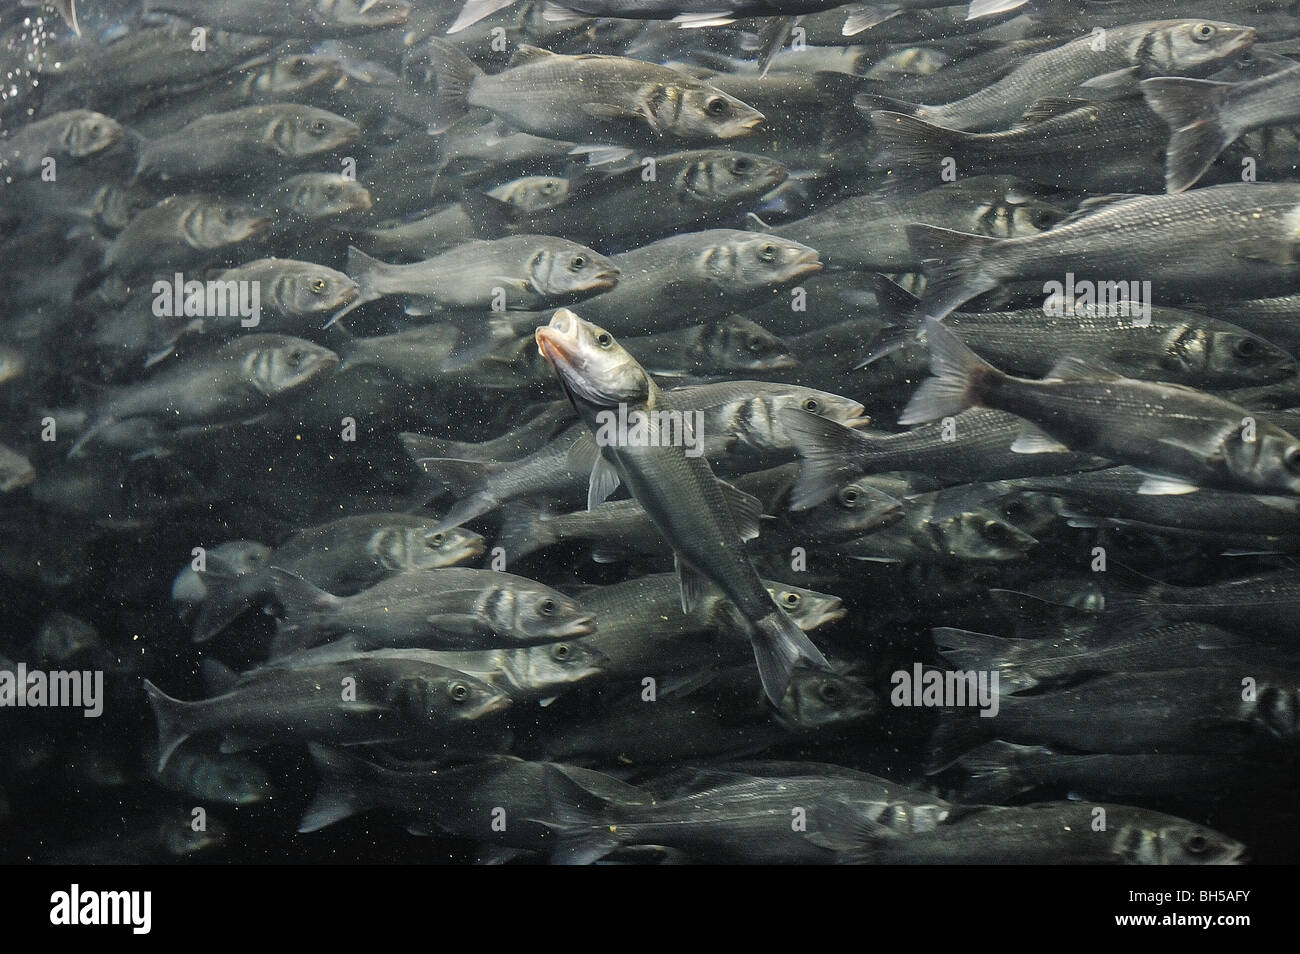 Fish swimming against the shoal - Stock Image